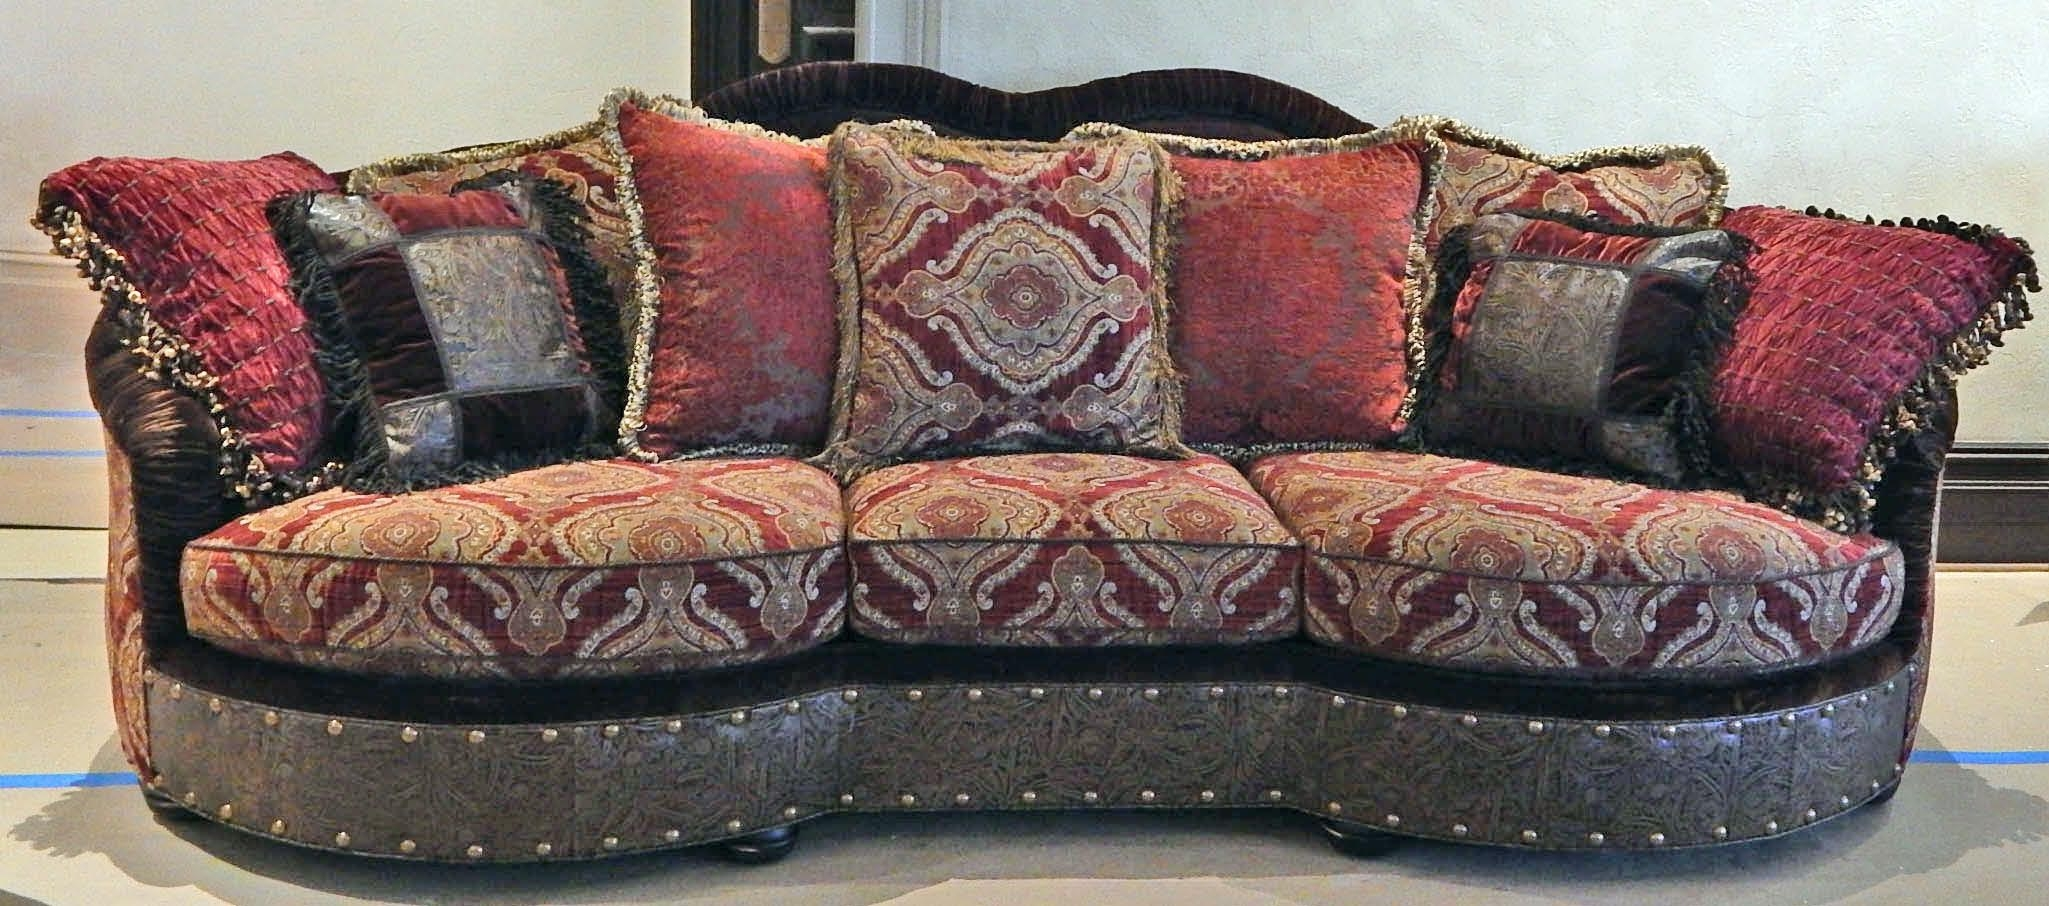 Luxury Leather U0026 Upholstered Furniture 12 Luxury Red Burgundy Sofa Or Couch.